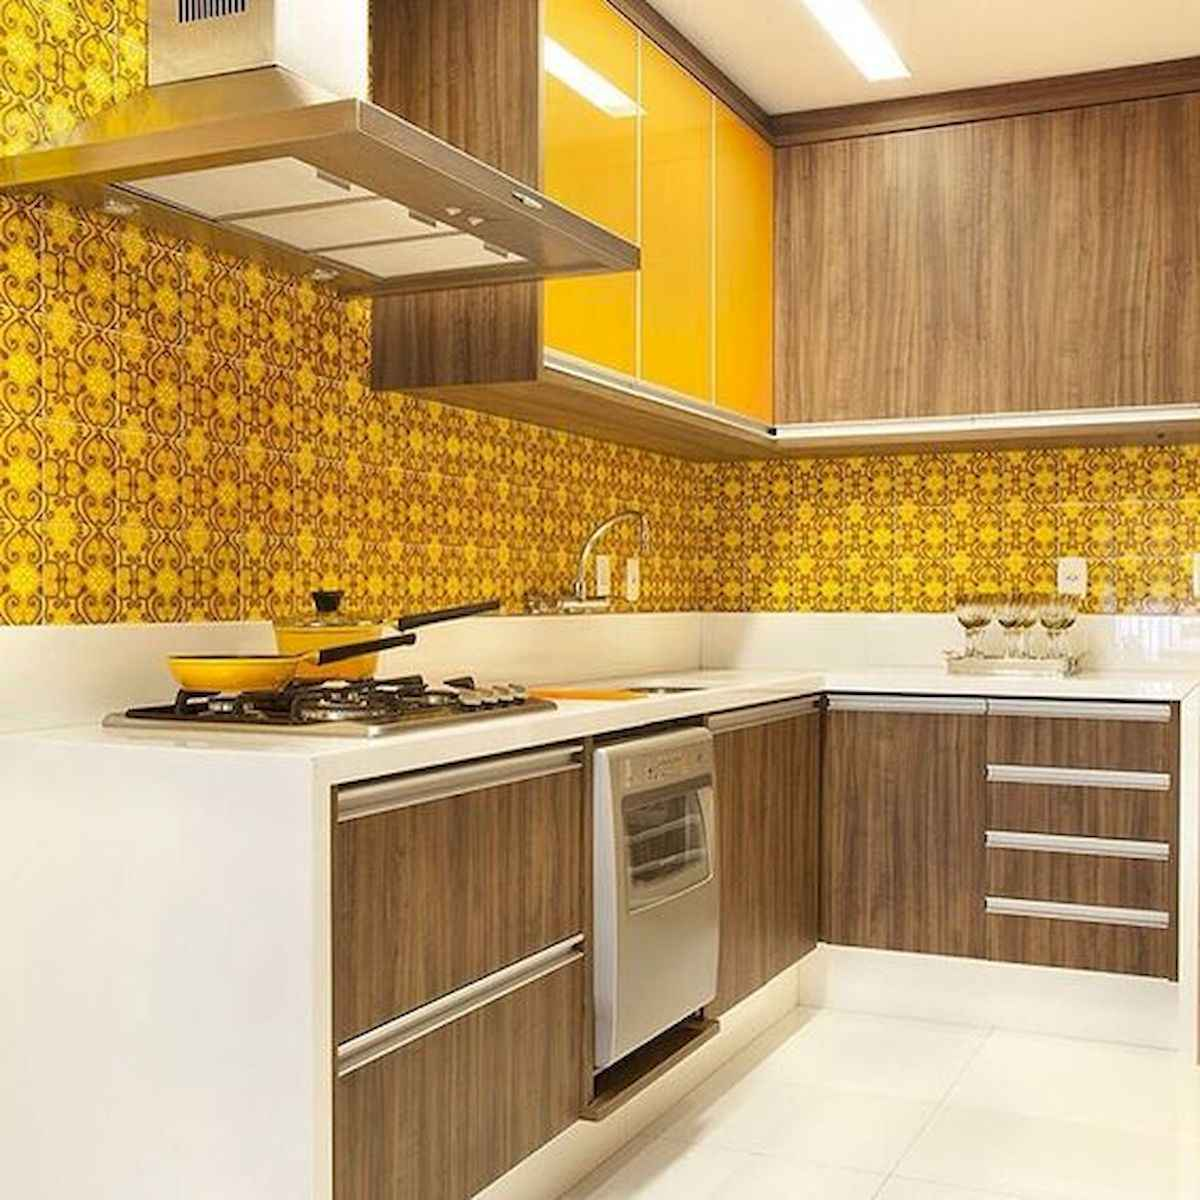 80+ Fantastic Colorful Kitchen Decor Ideas And Remodel for Summer Project (20)